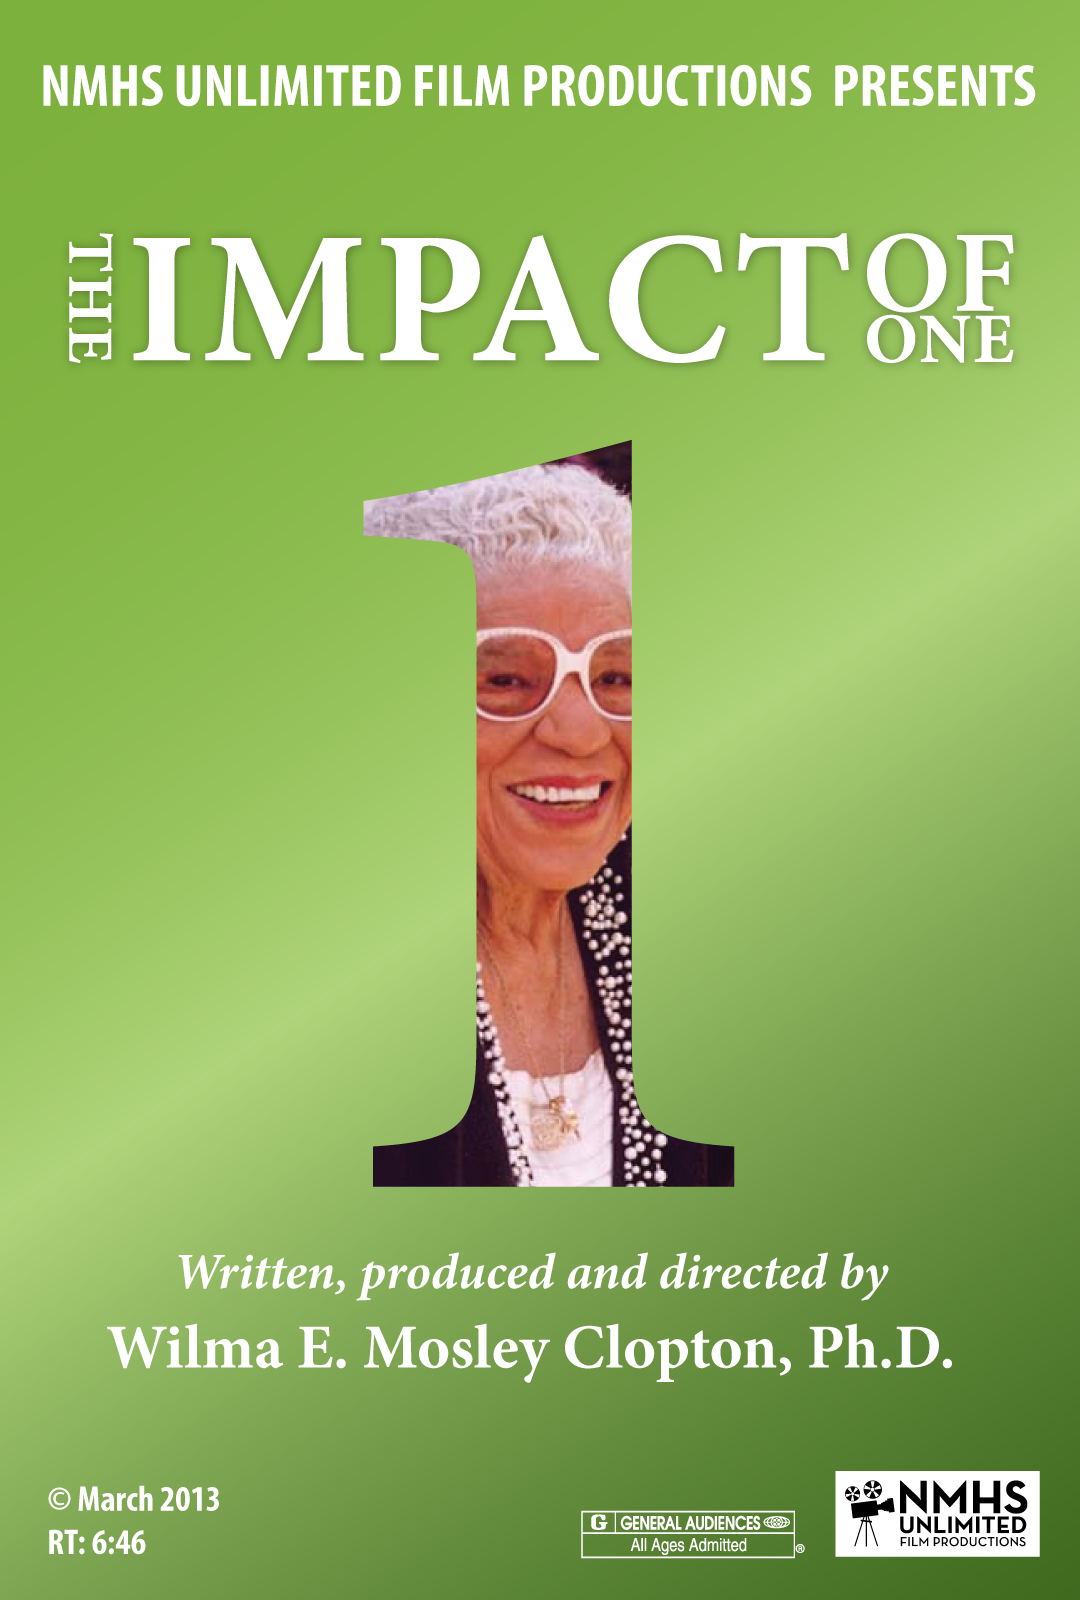 the_impact_of_one_vimeo_poster_new_v1